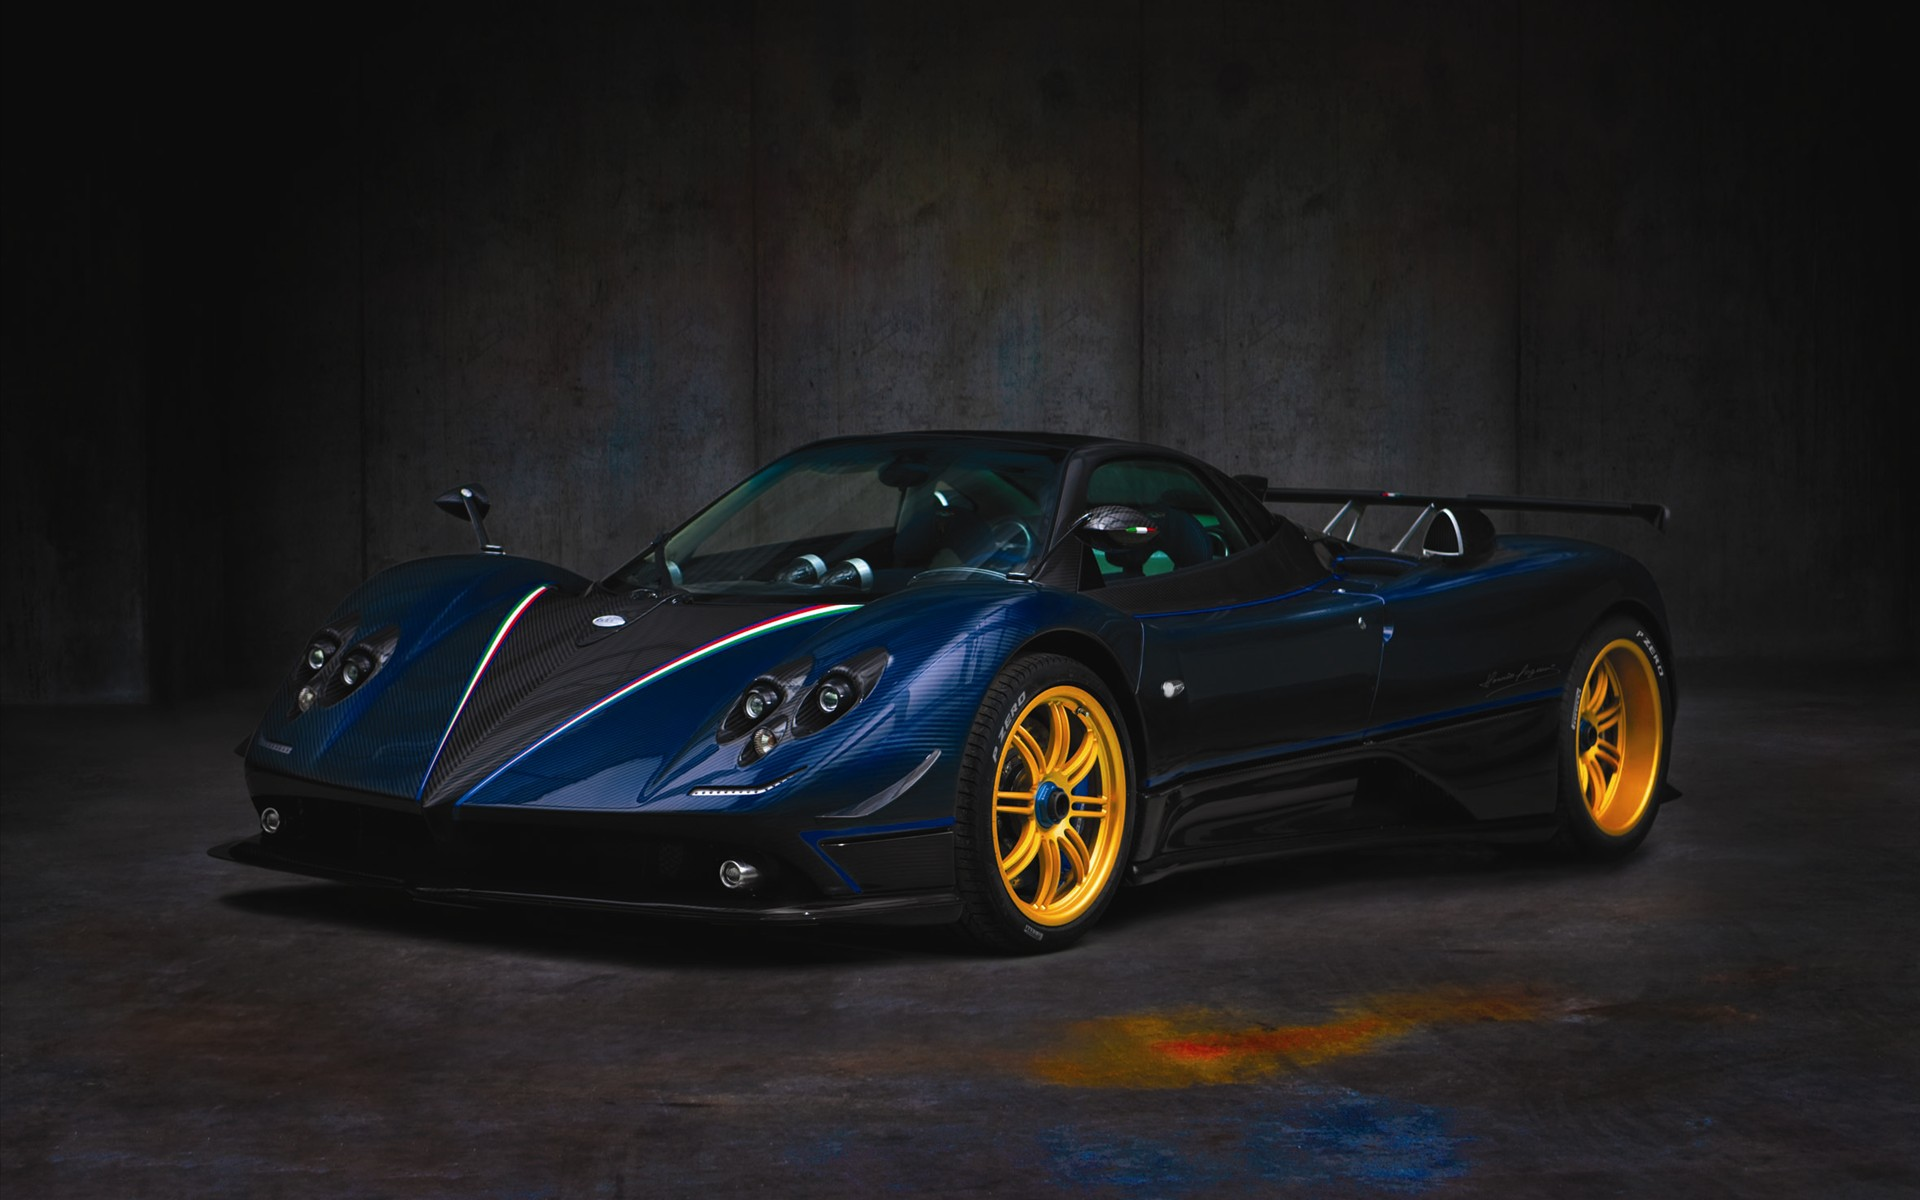 2011 Pagani Zonda Tricolor Wallpaper HD Car Wallpapers 1920x1200